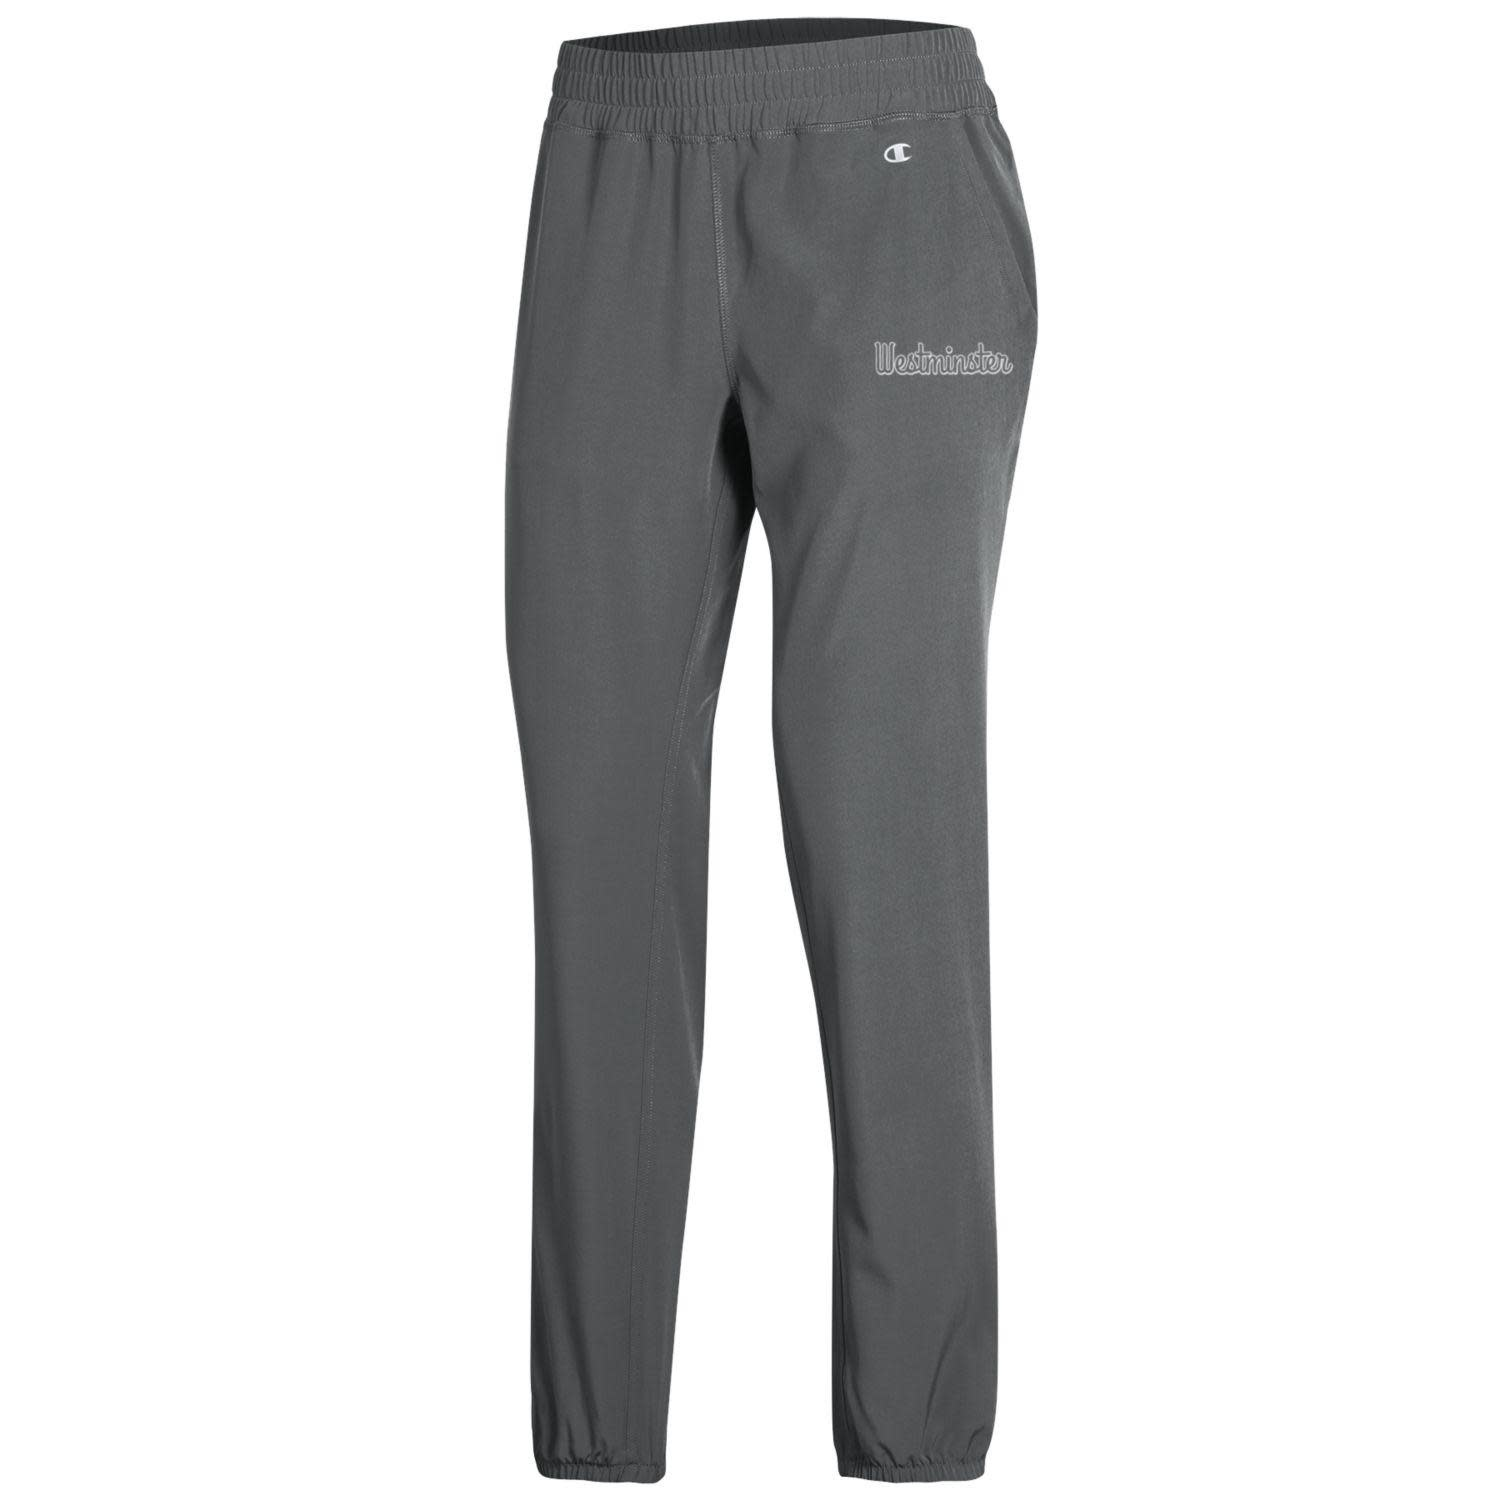 Champion Pant: Champion Women's Woven Stretch Titanium